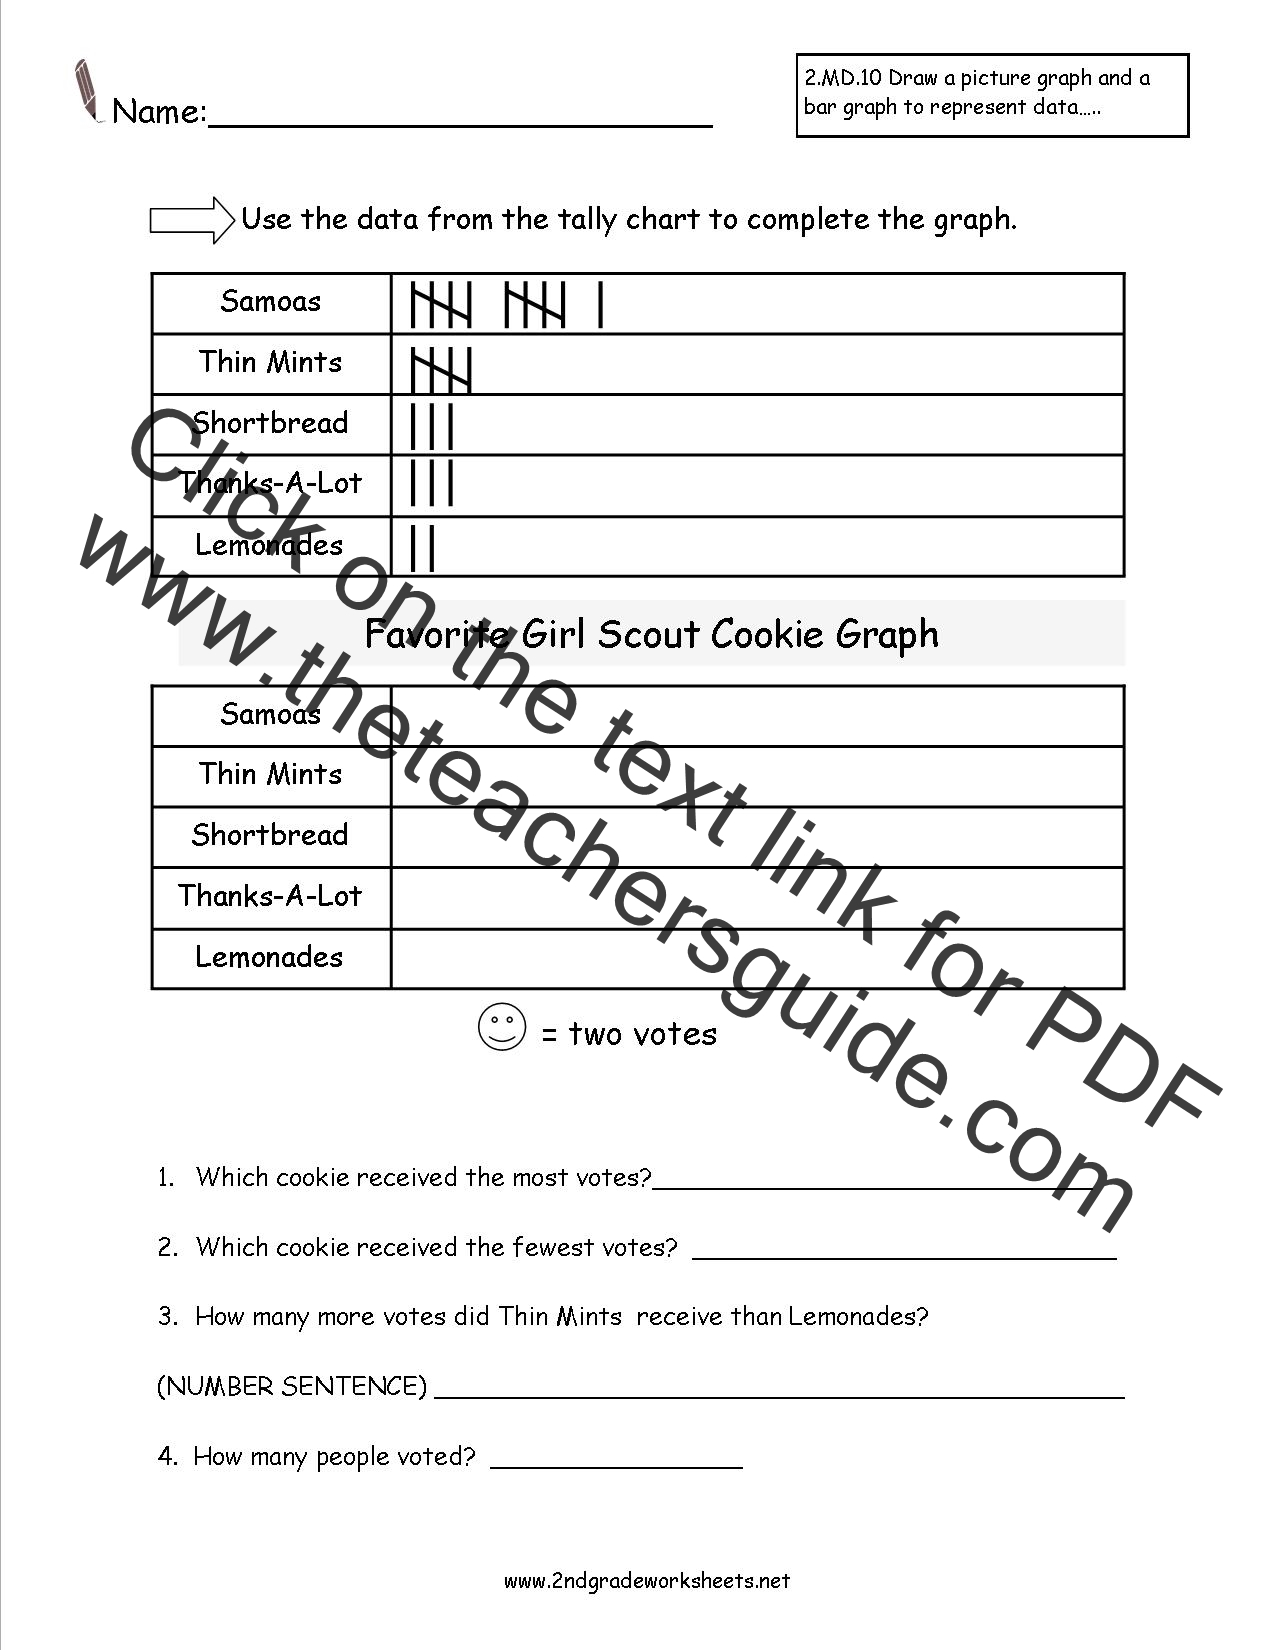 Second grade reading and creating pictograph worksheets favorite girl scout cookie pictograph ibookread ePUb